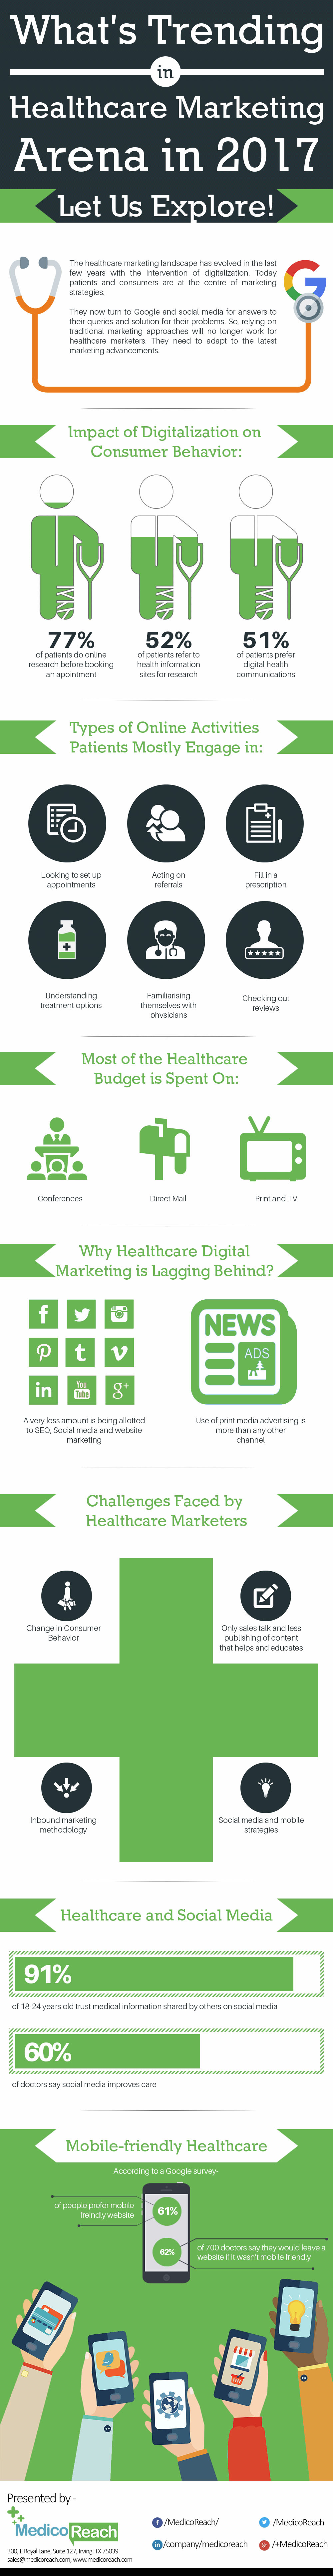 What's Trending Healthcare Marketing Arena in 2017?